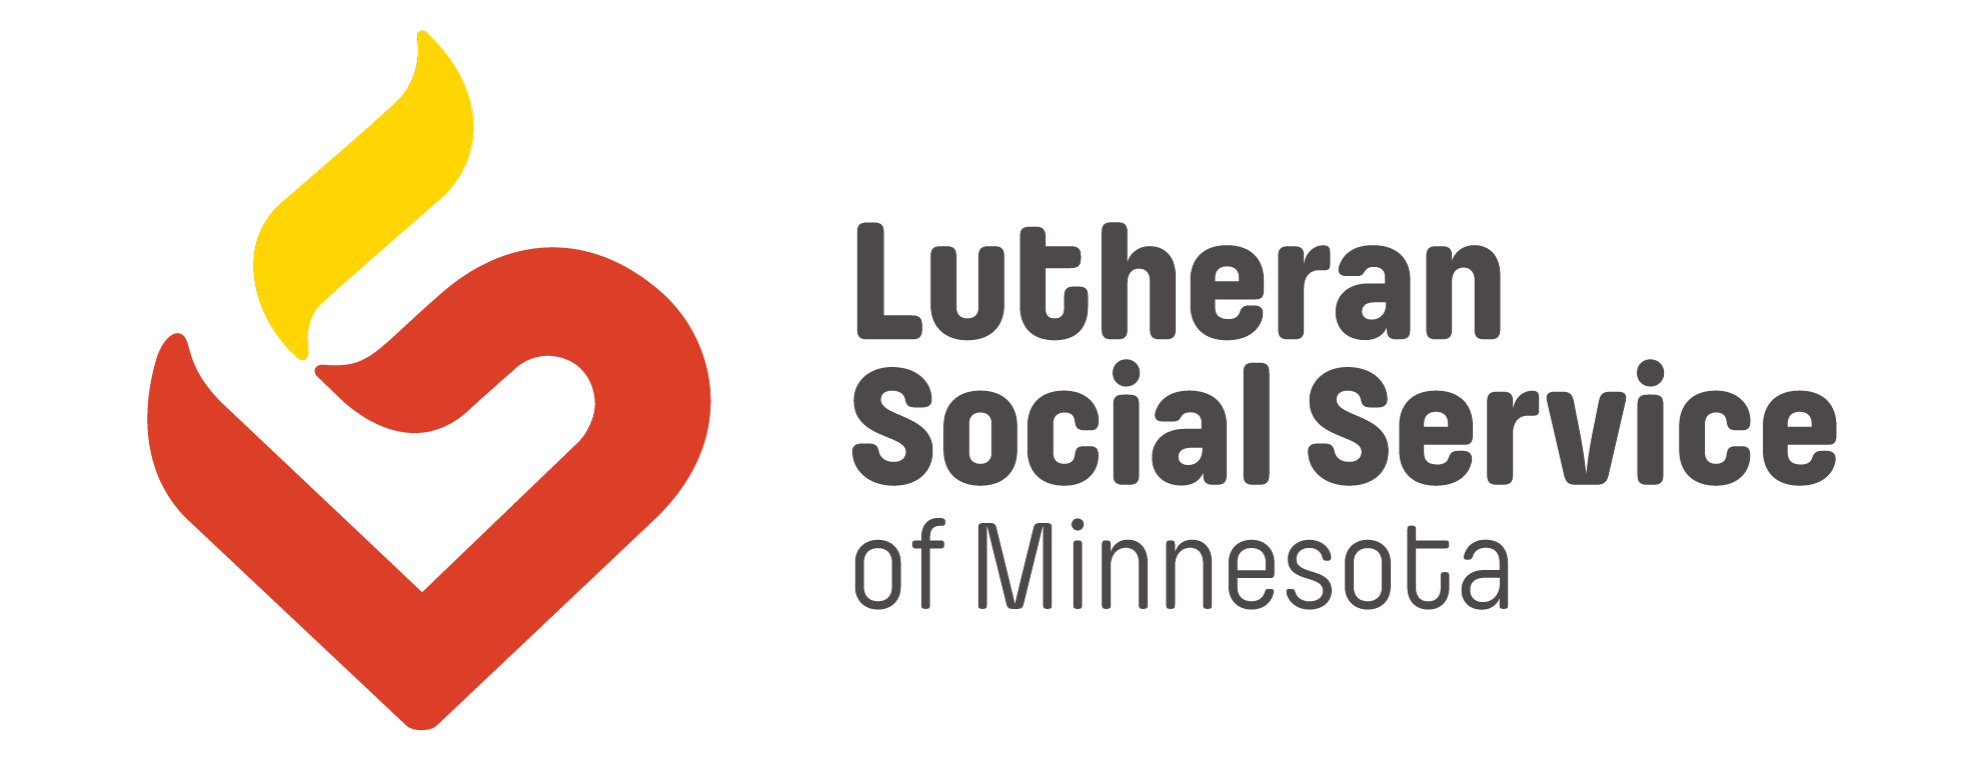 LSS Logo_2016-large-white-1-e1477599596980.png